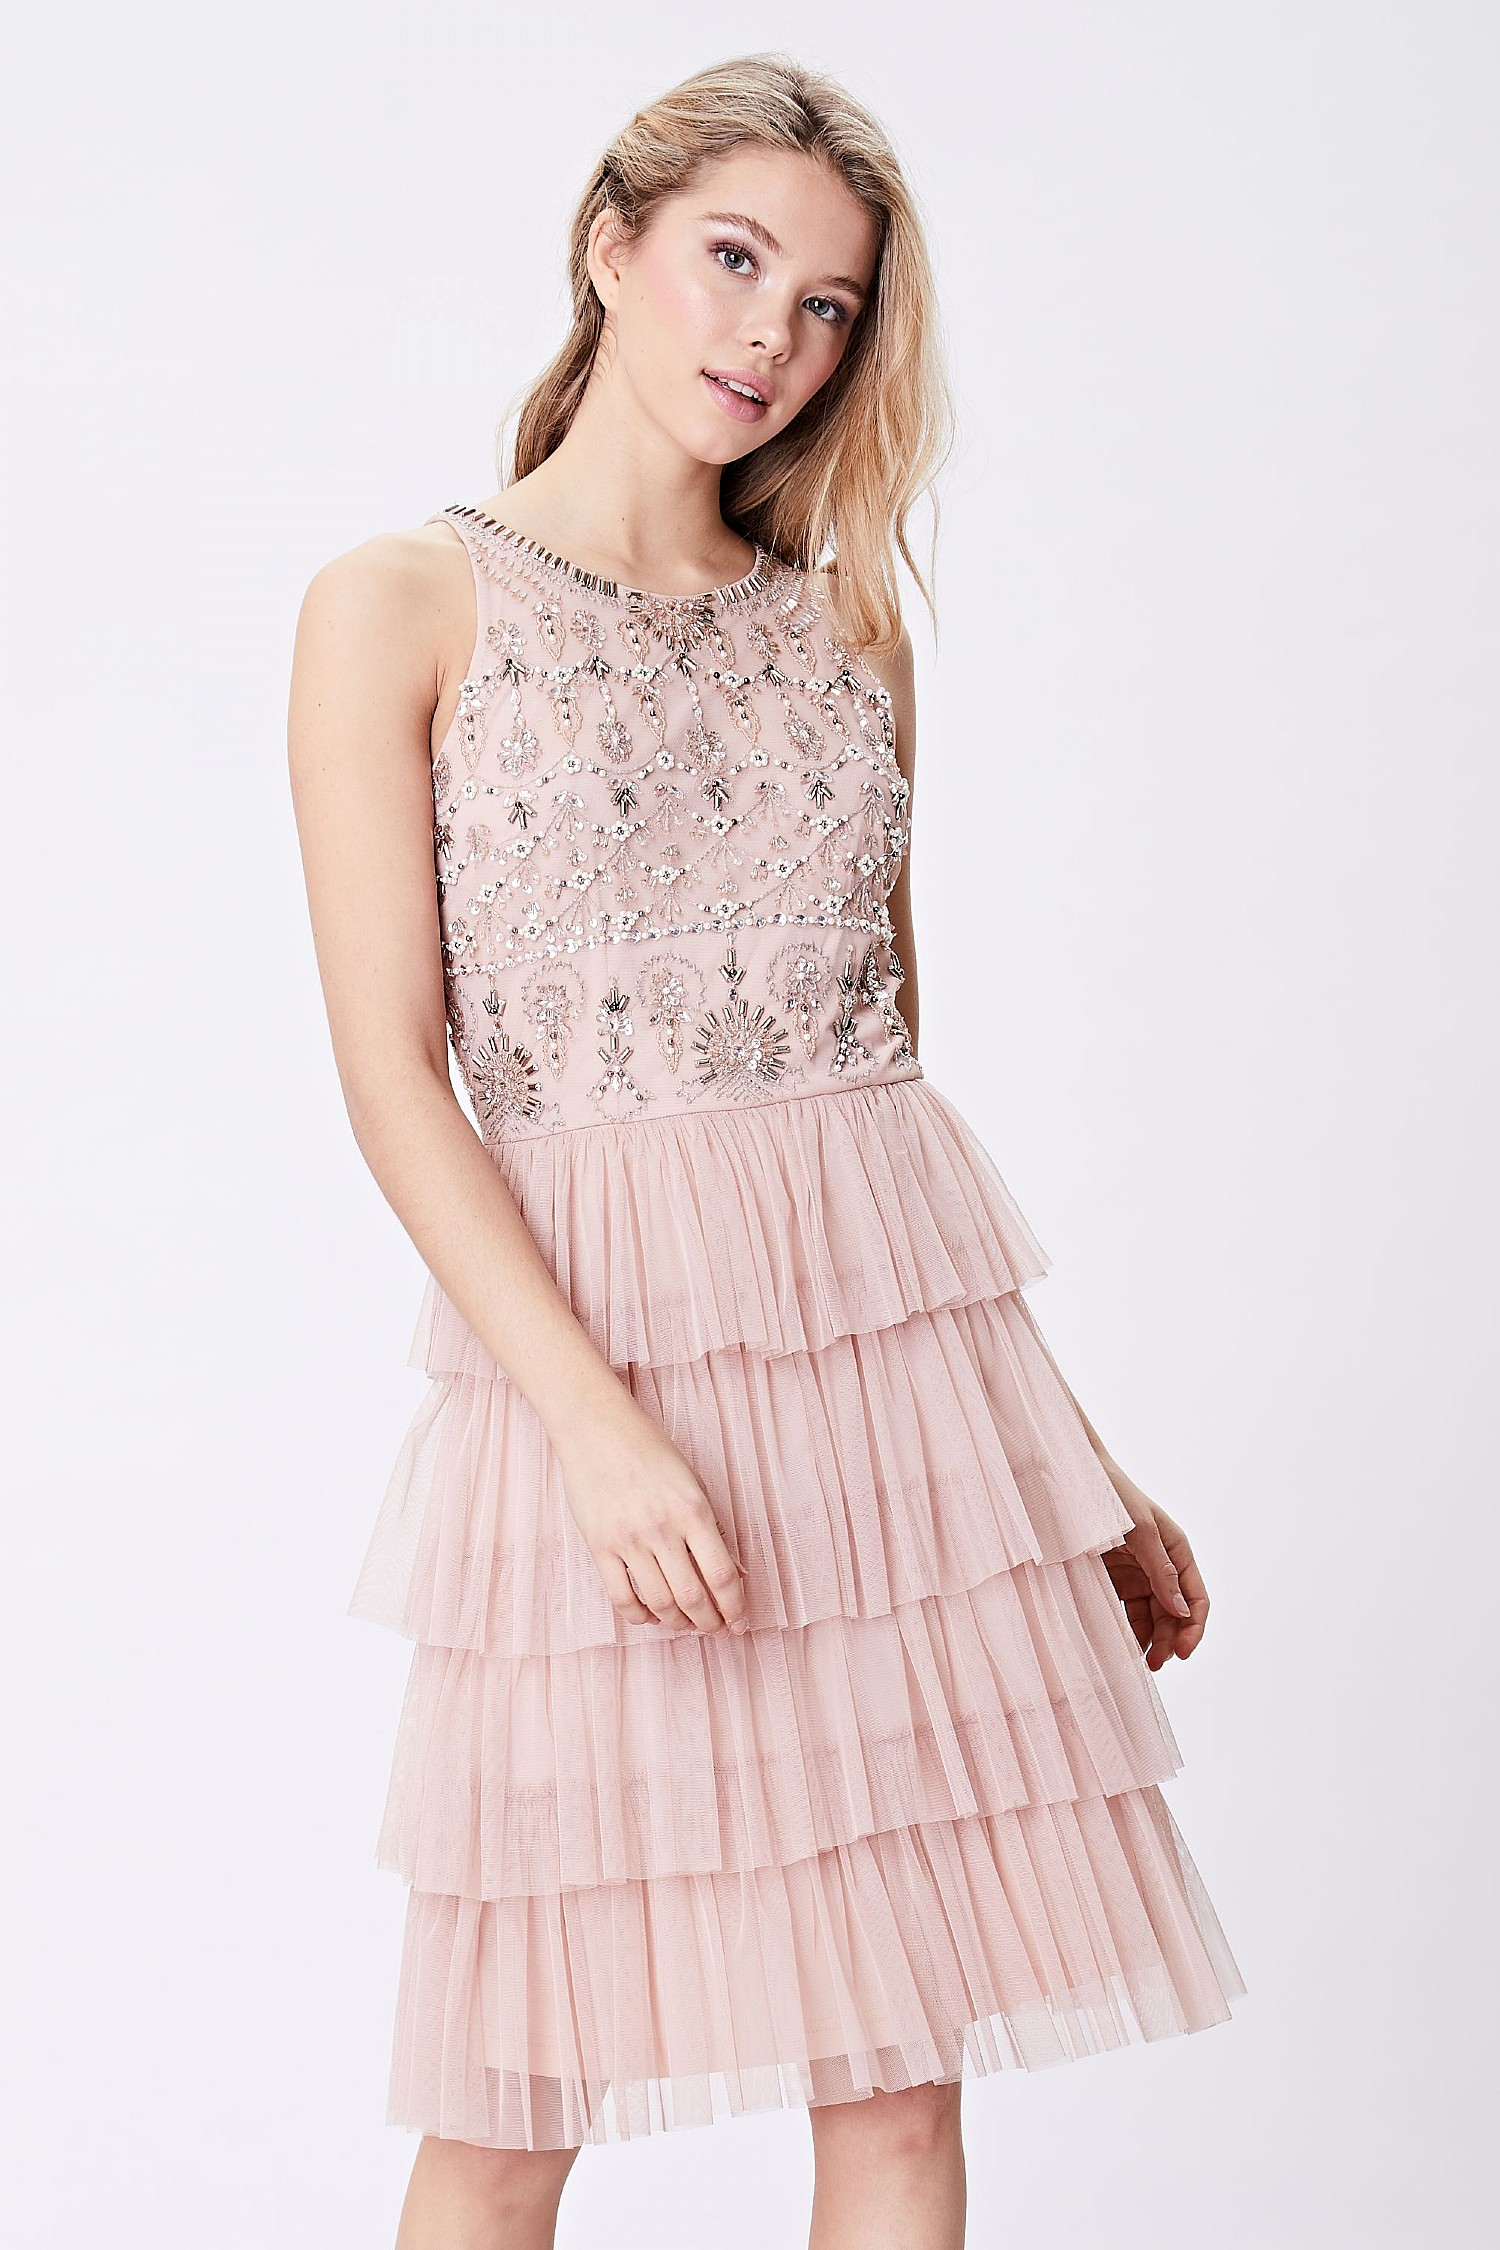 2611856d4ce2cf ANGELEYE Pink Embellished Layered Tulle Mini Dress